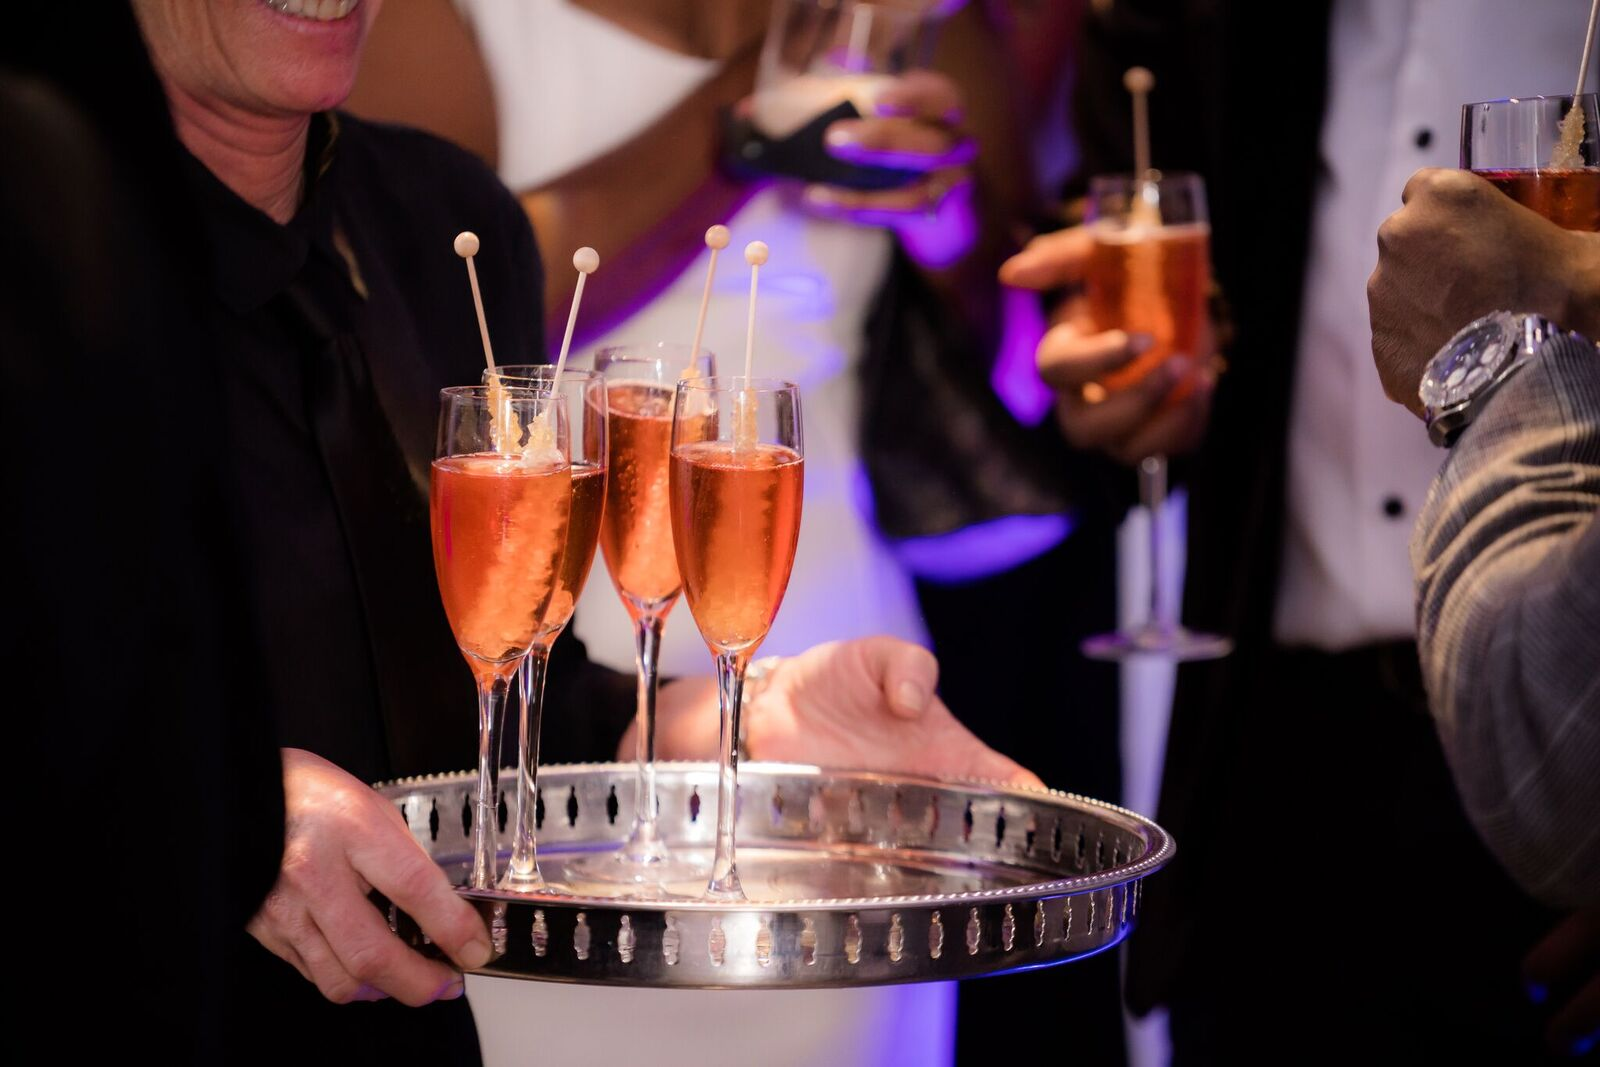 Champagne and Rock Candy for a black tie event